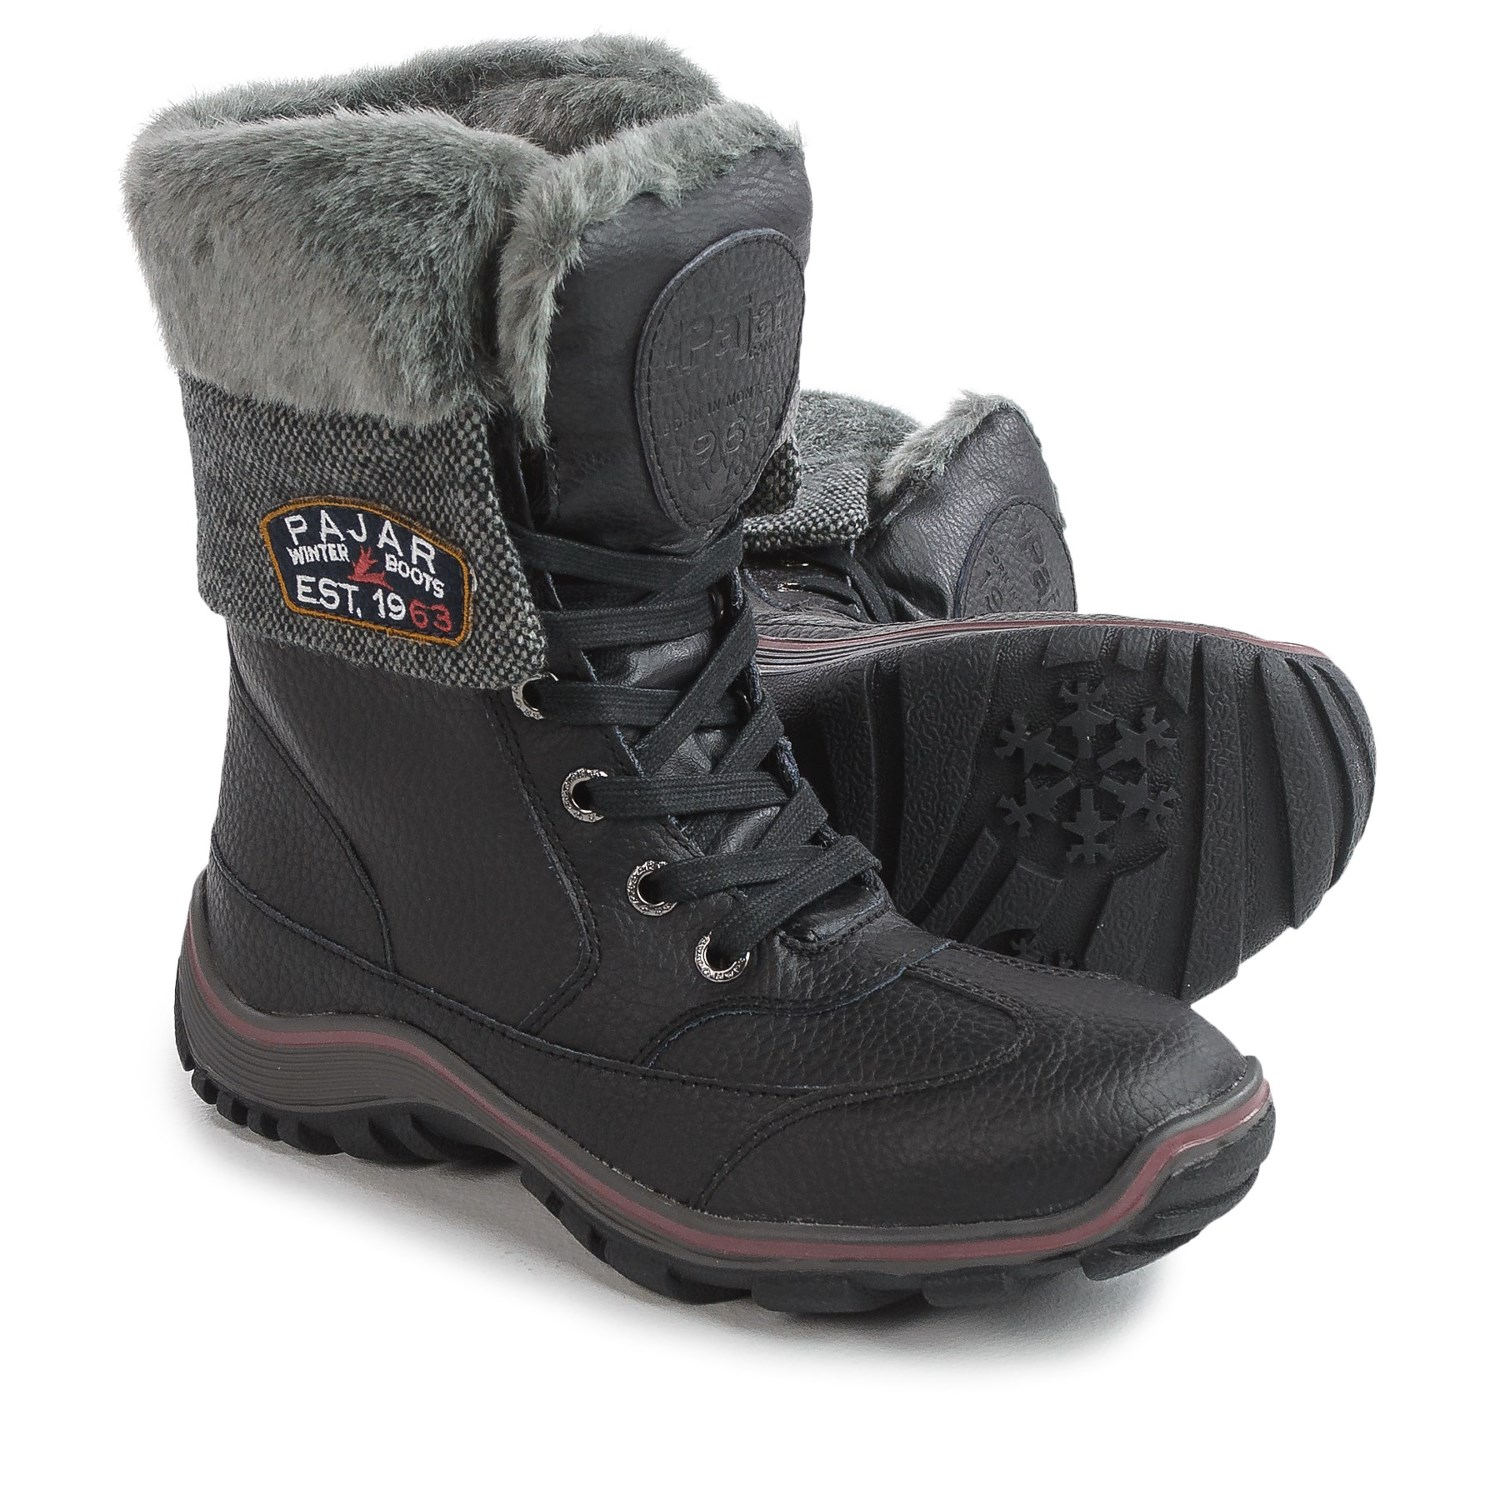 68af92f5c53 Pajar Alice Winter Boots - Waterproof, Leather (For Women)